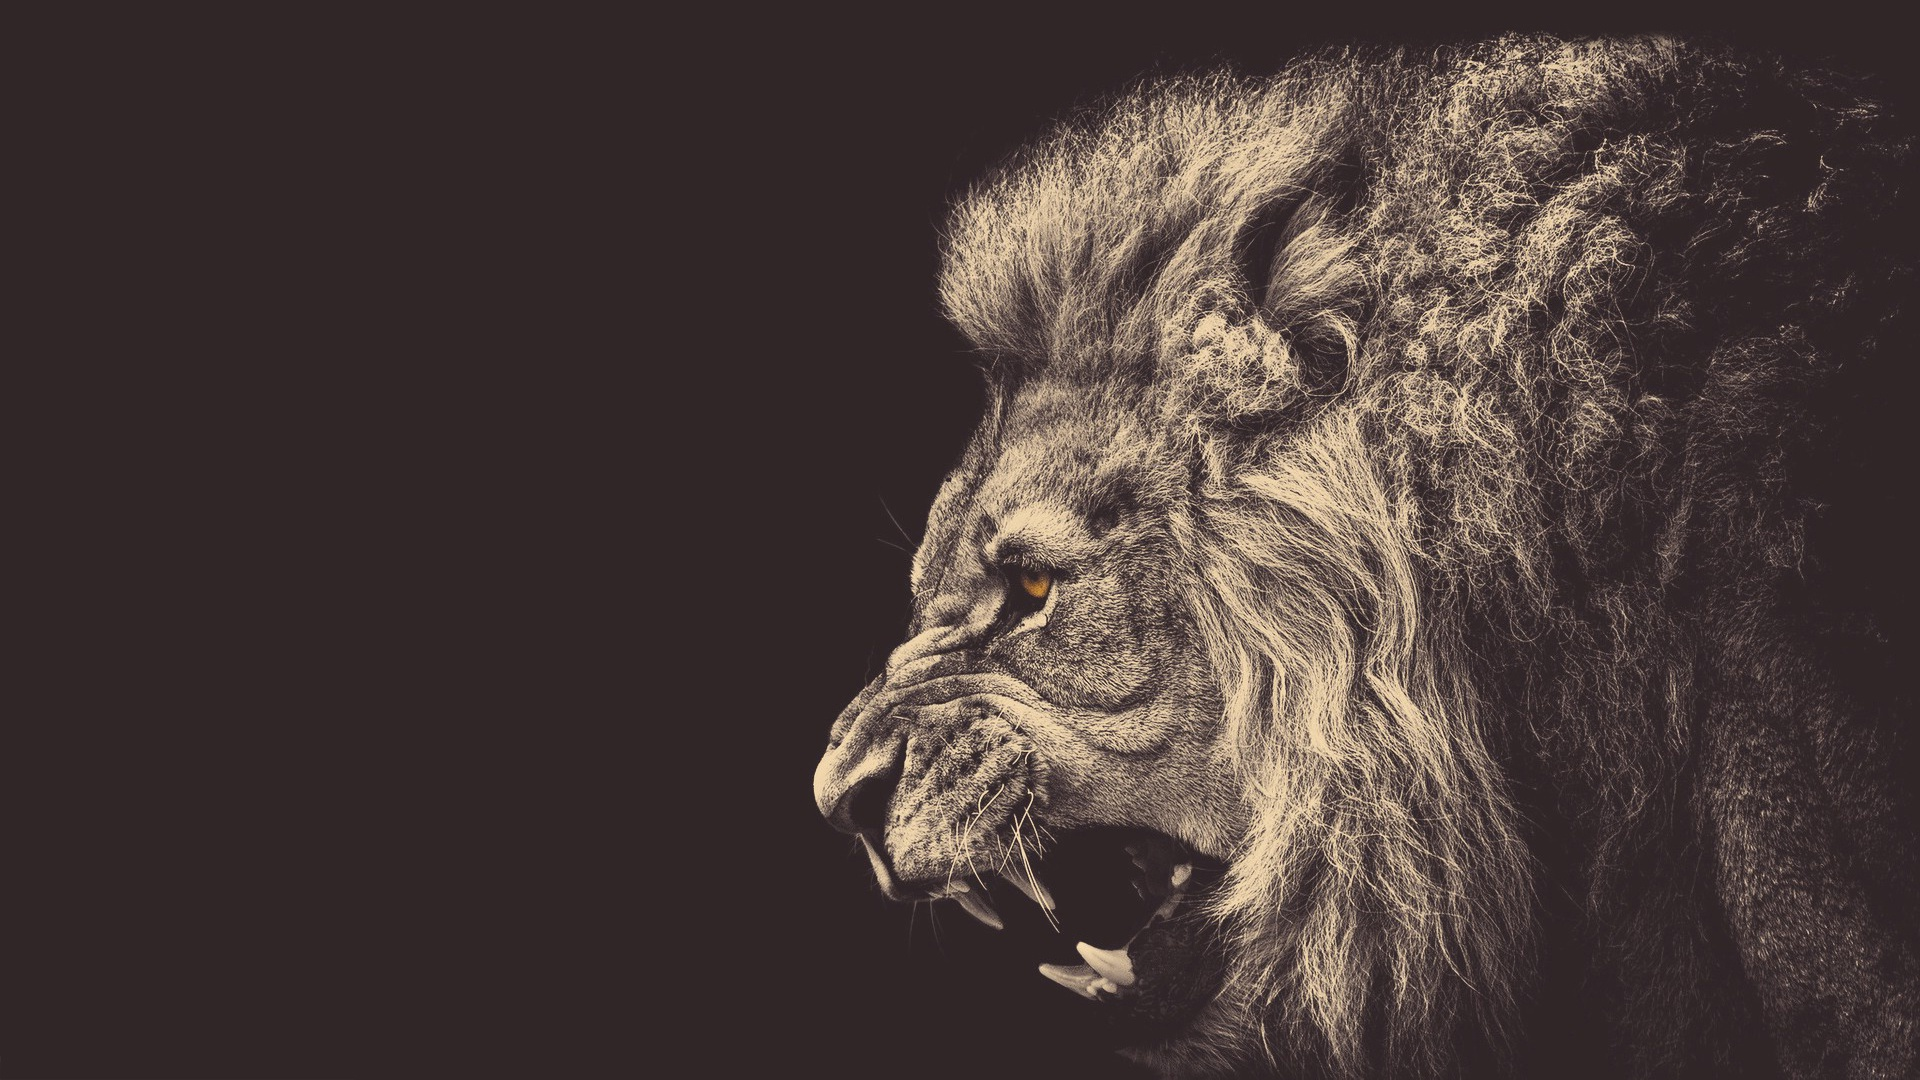 Angry Lions HD Wallpapers | WallpapersCharlie